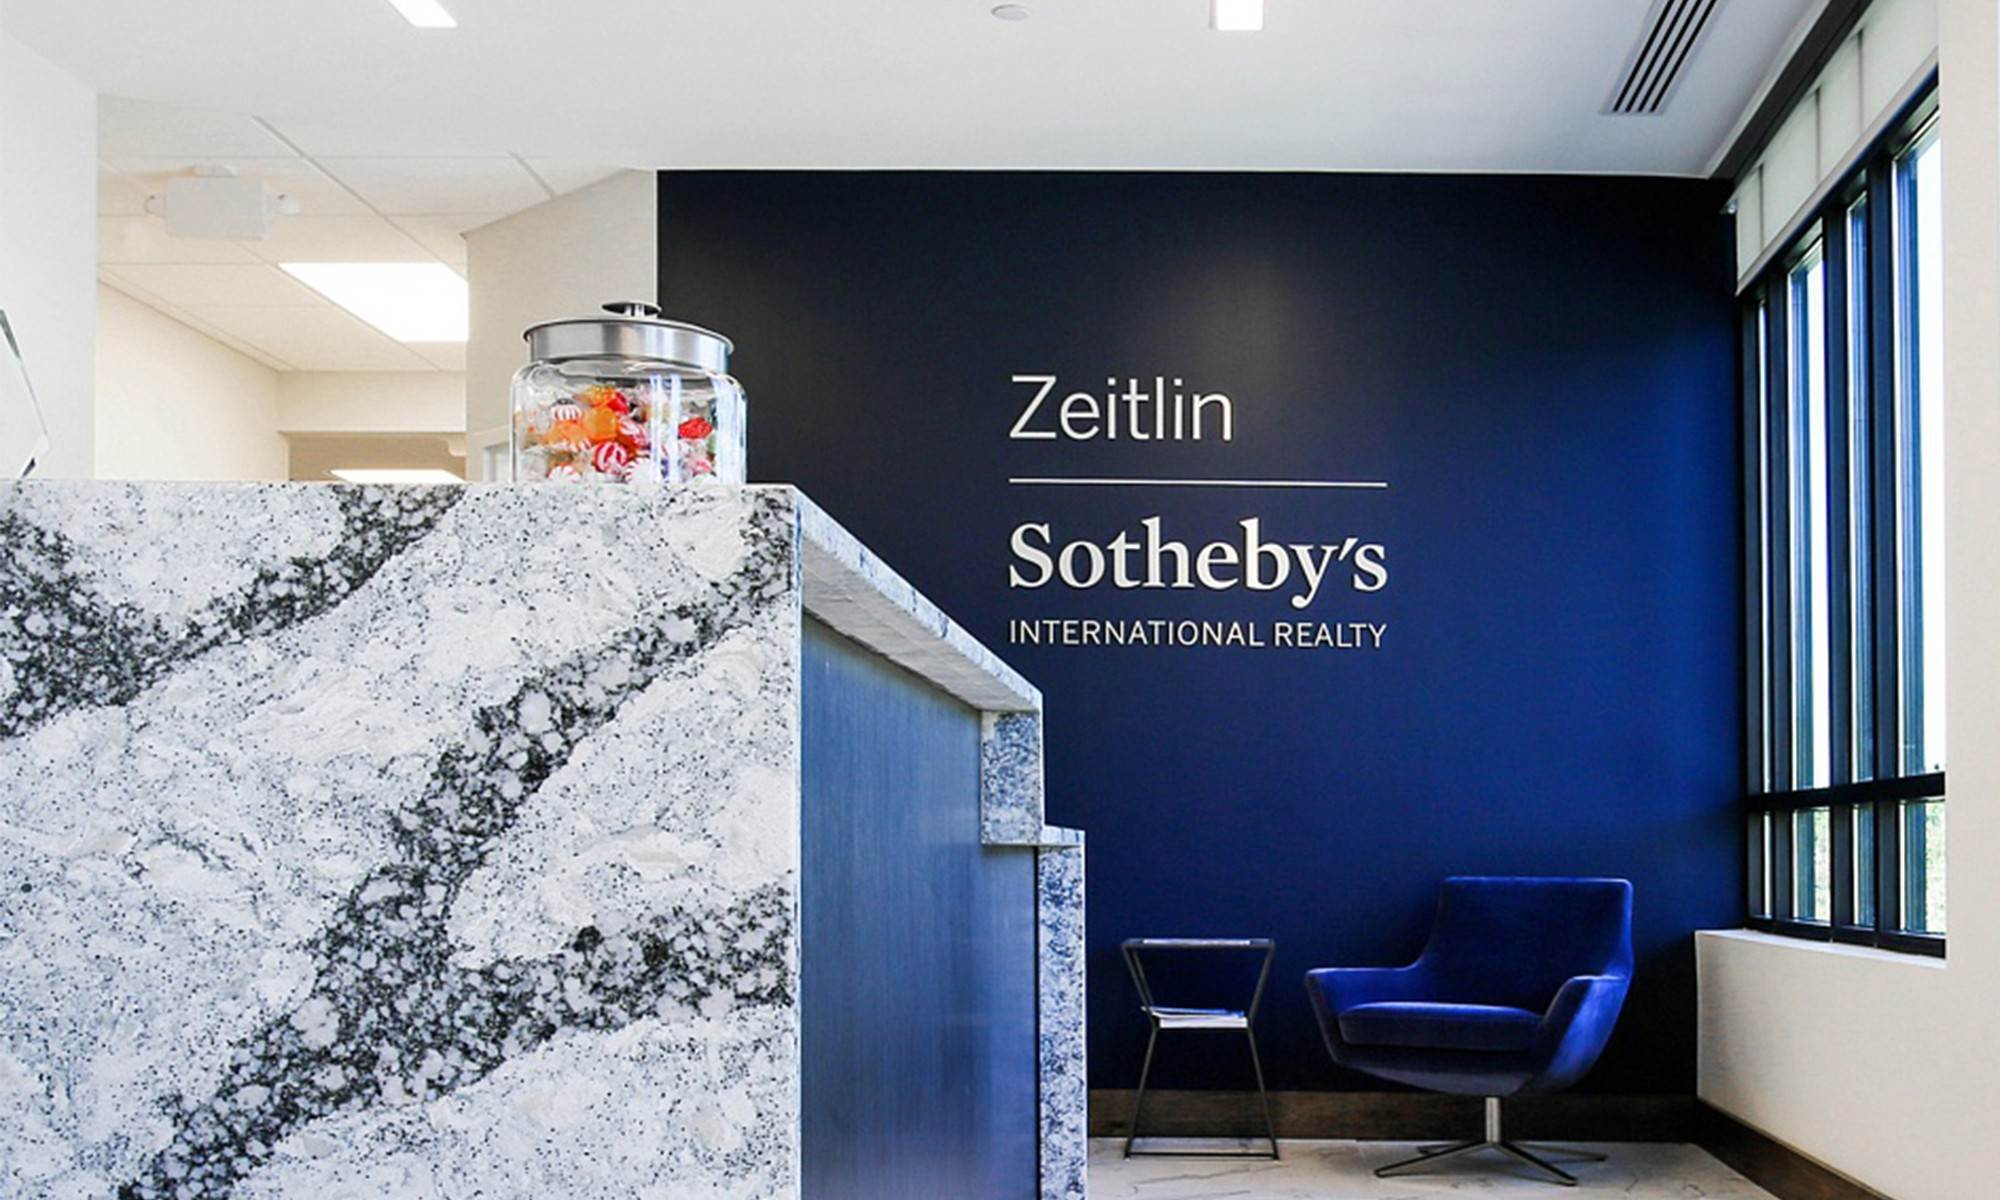 Office Zeitlin Sotheby's International Realty Photo